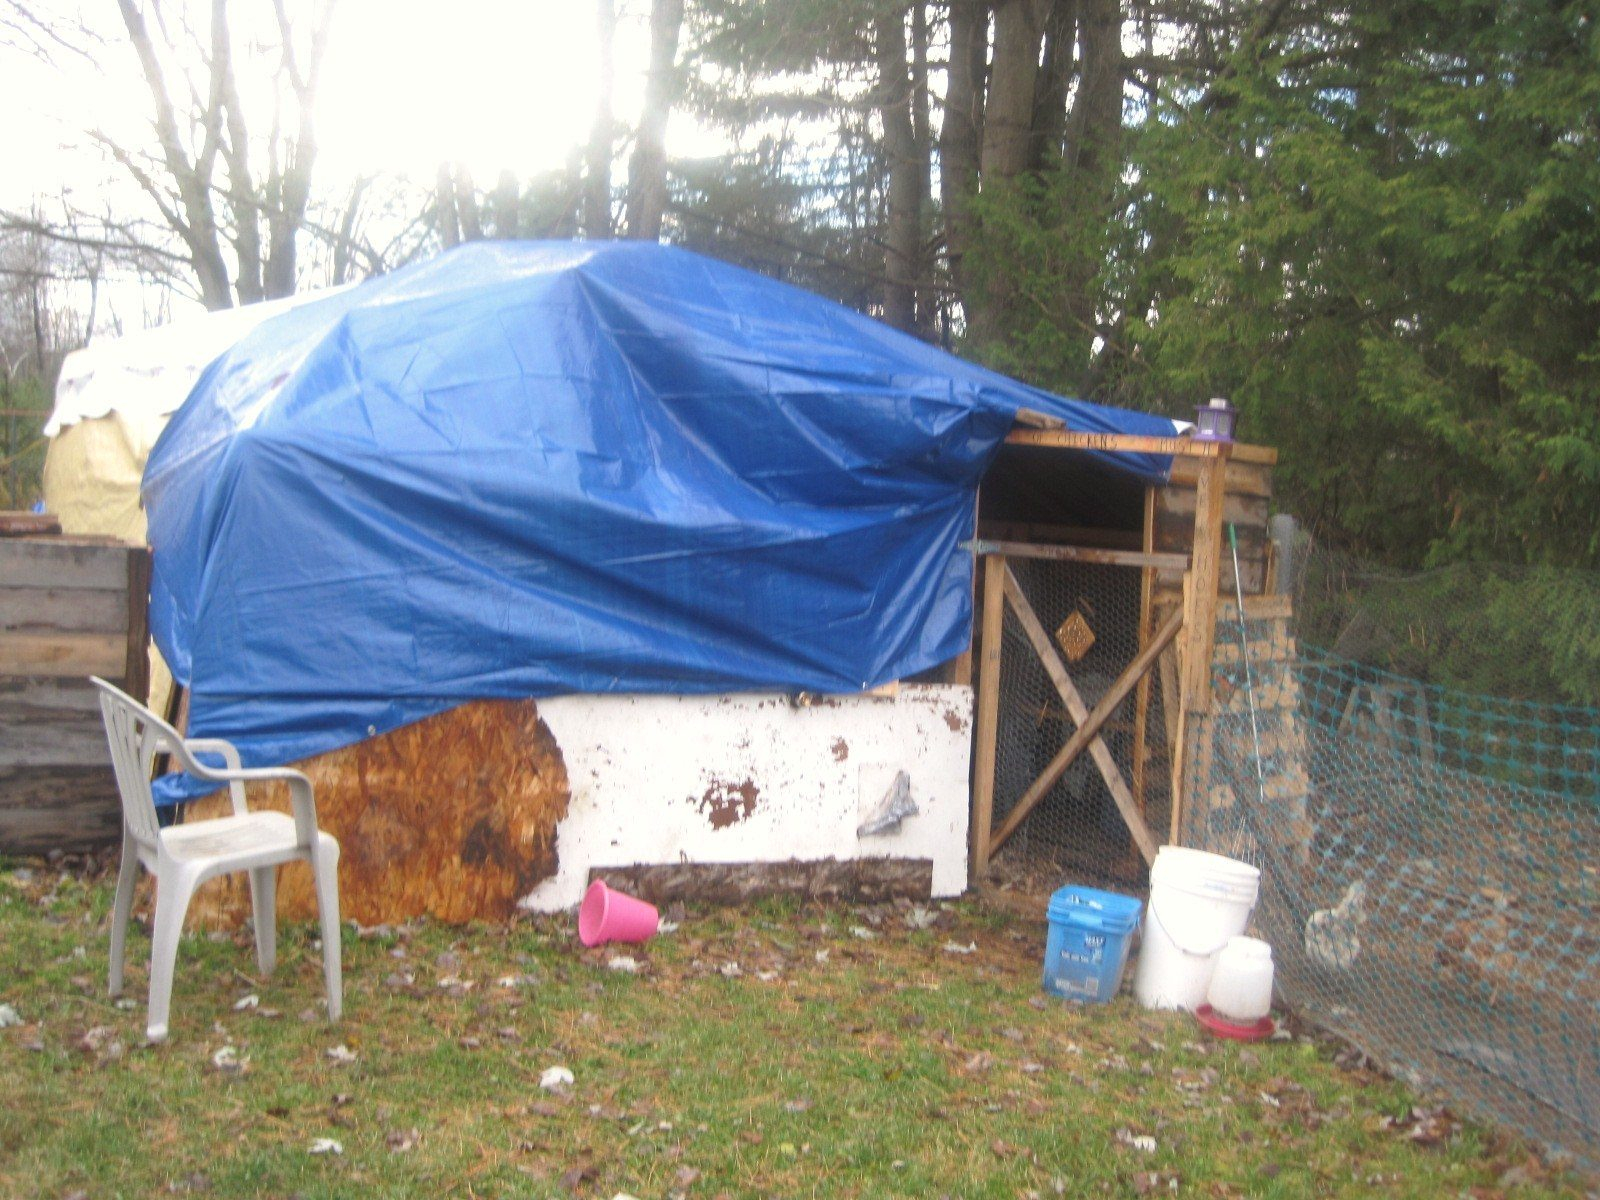 this was my car tent 12 by 20ft. we added it to the coop and covered both ends with tarps